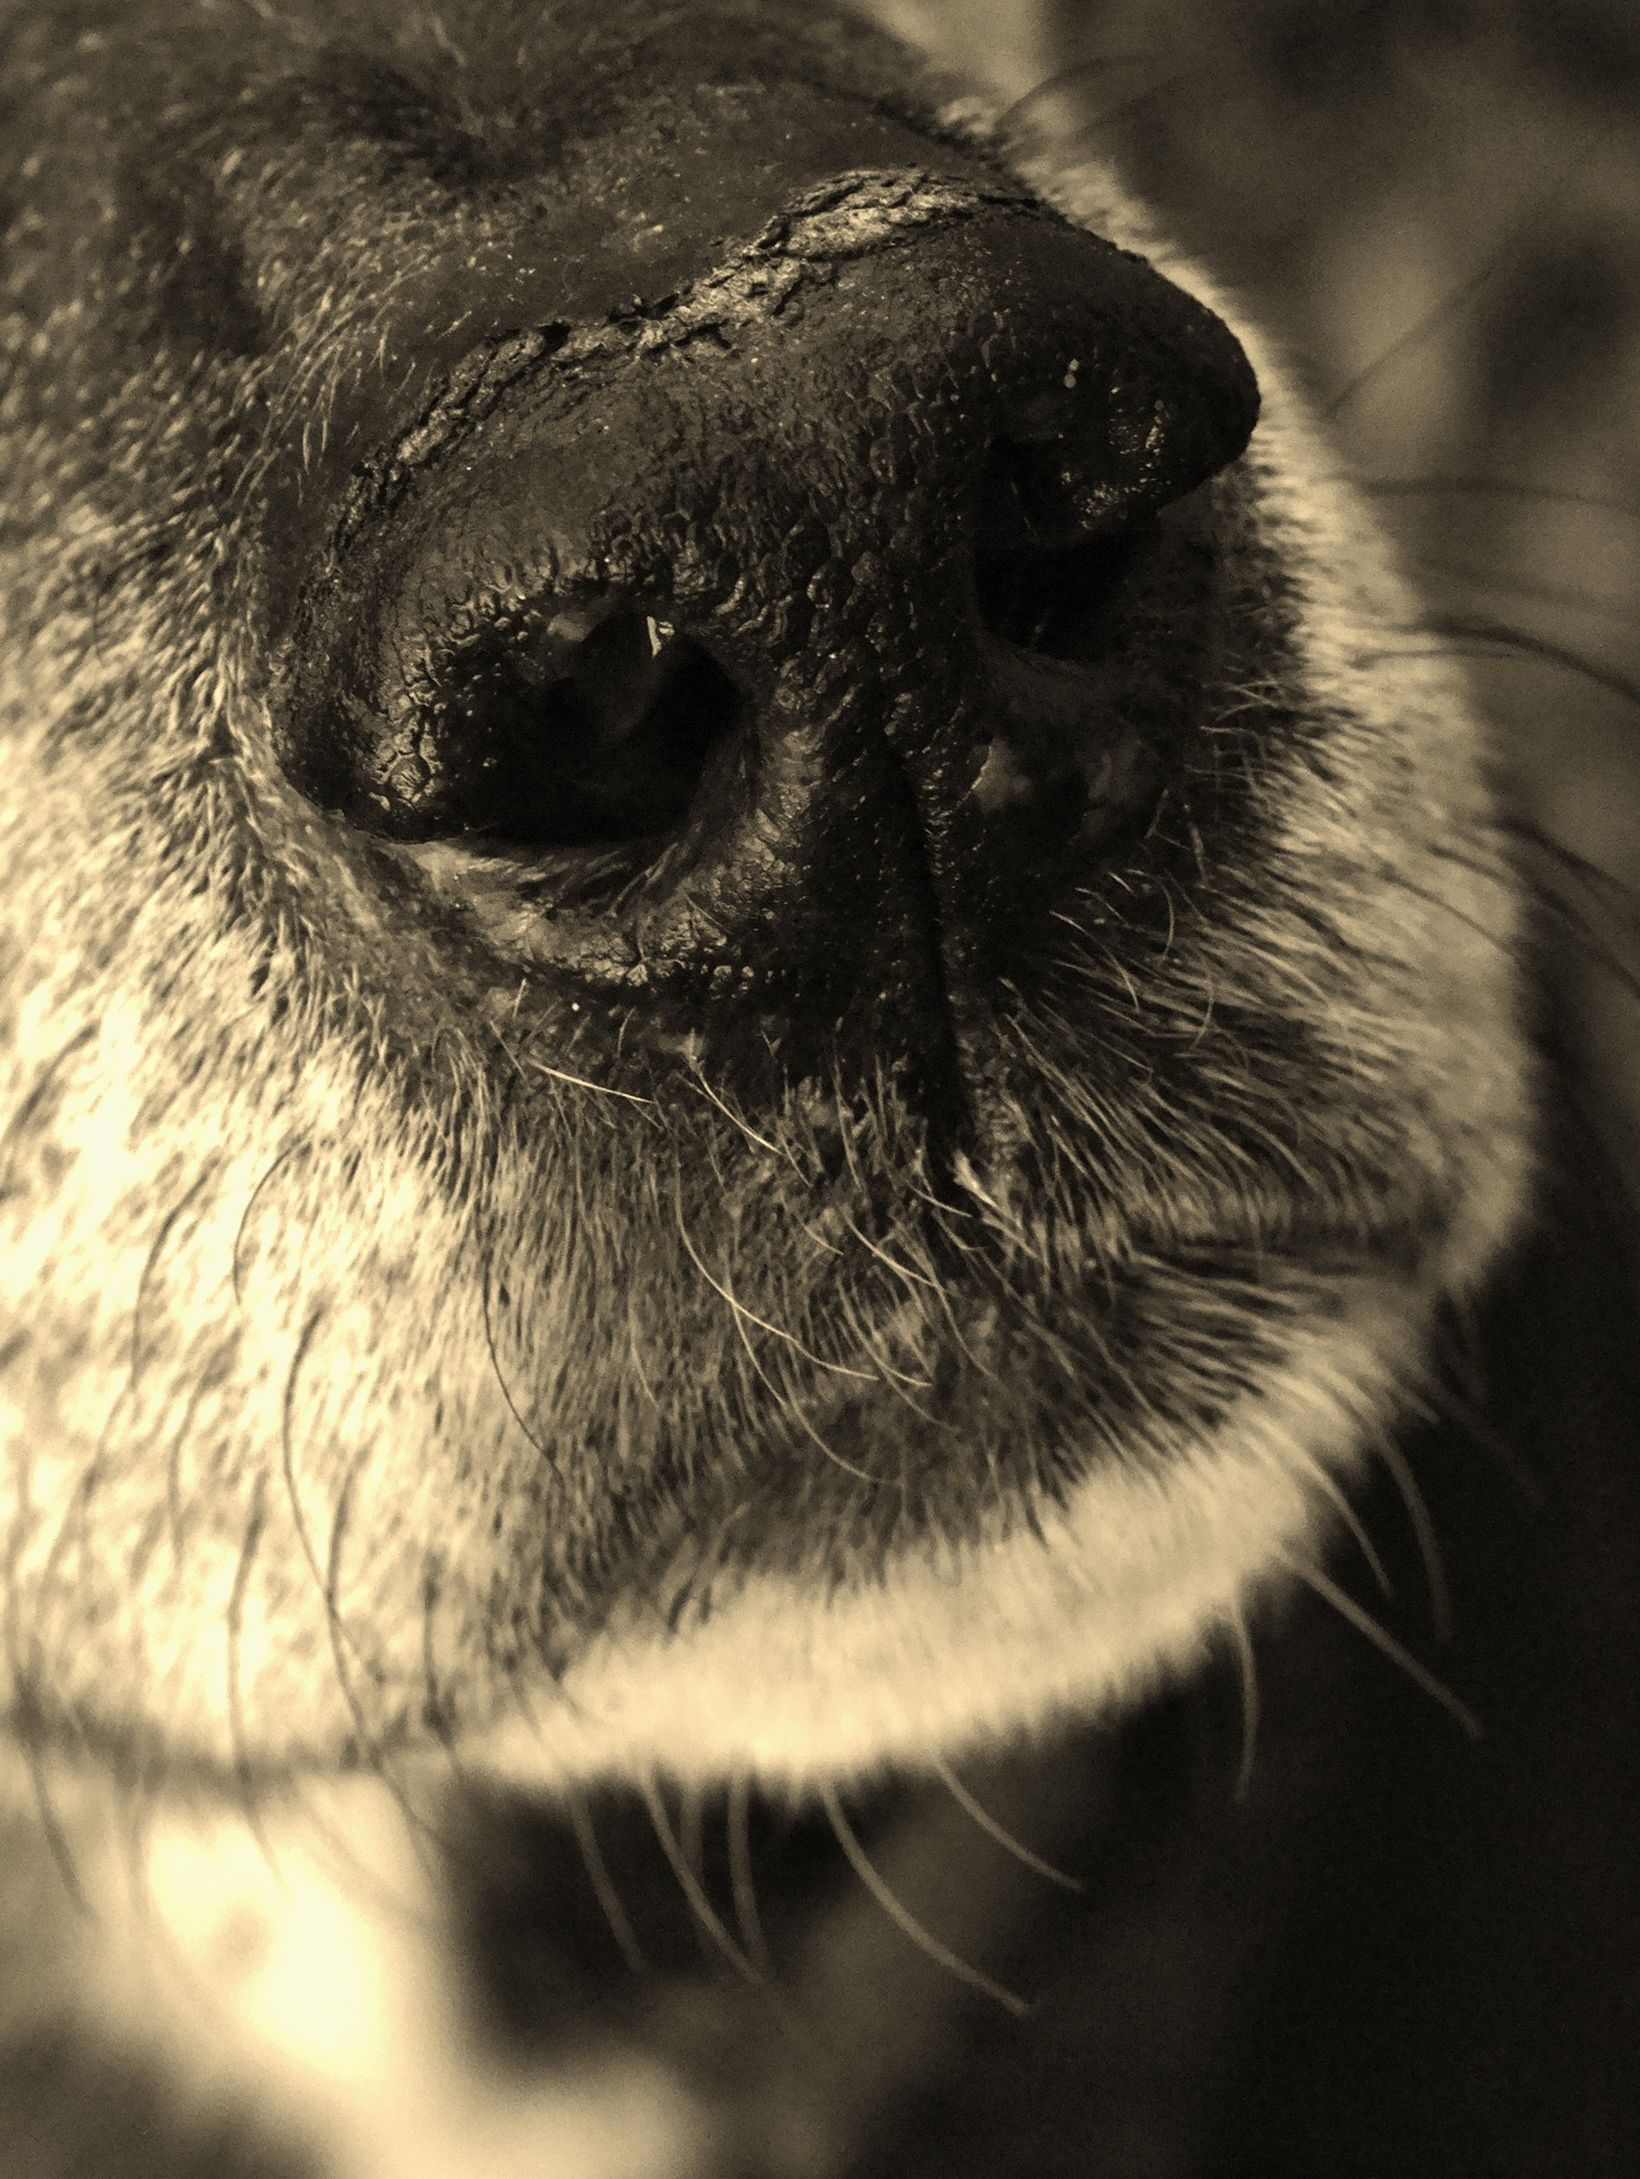 Pin By Molly Boyd On Tattoo Ideas: Puppies, Nose, Photography